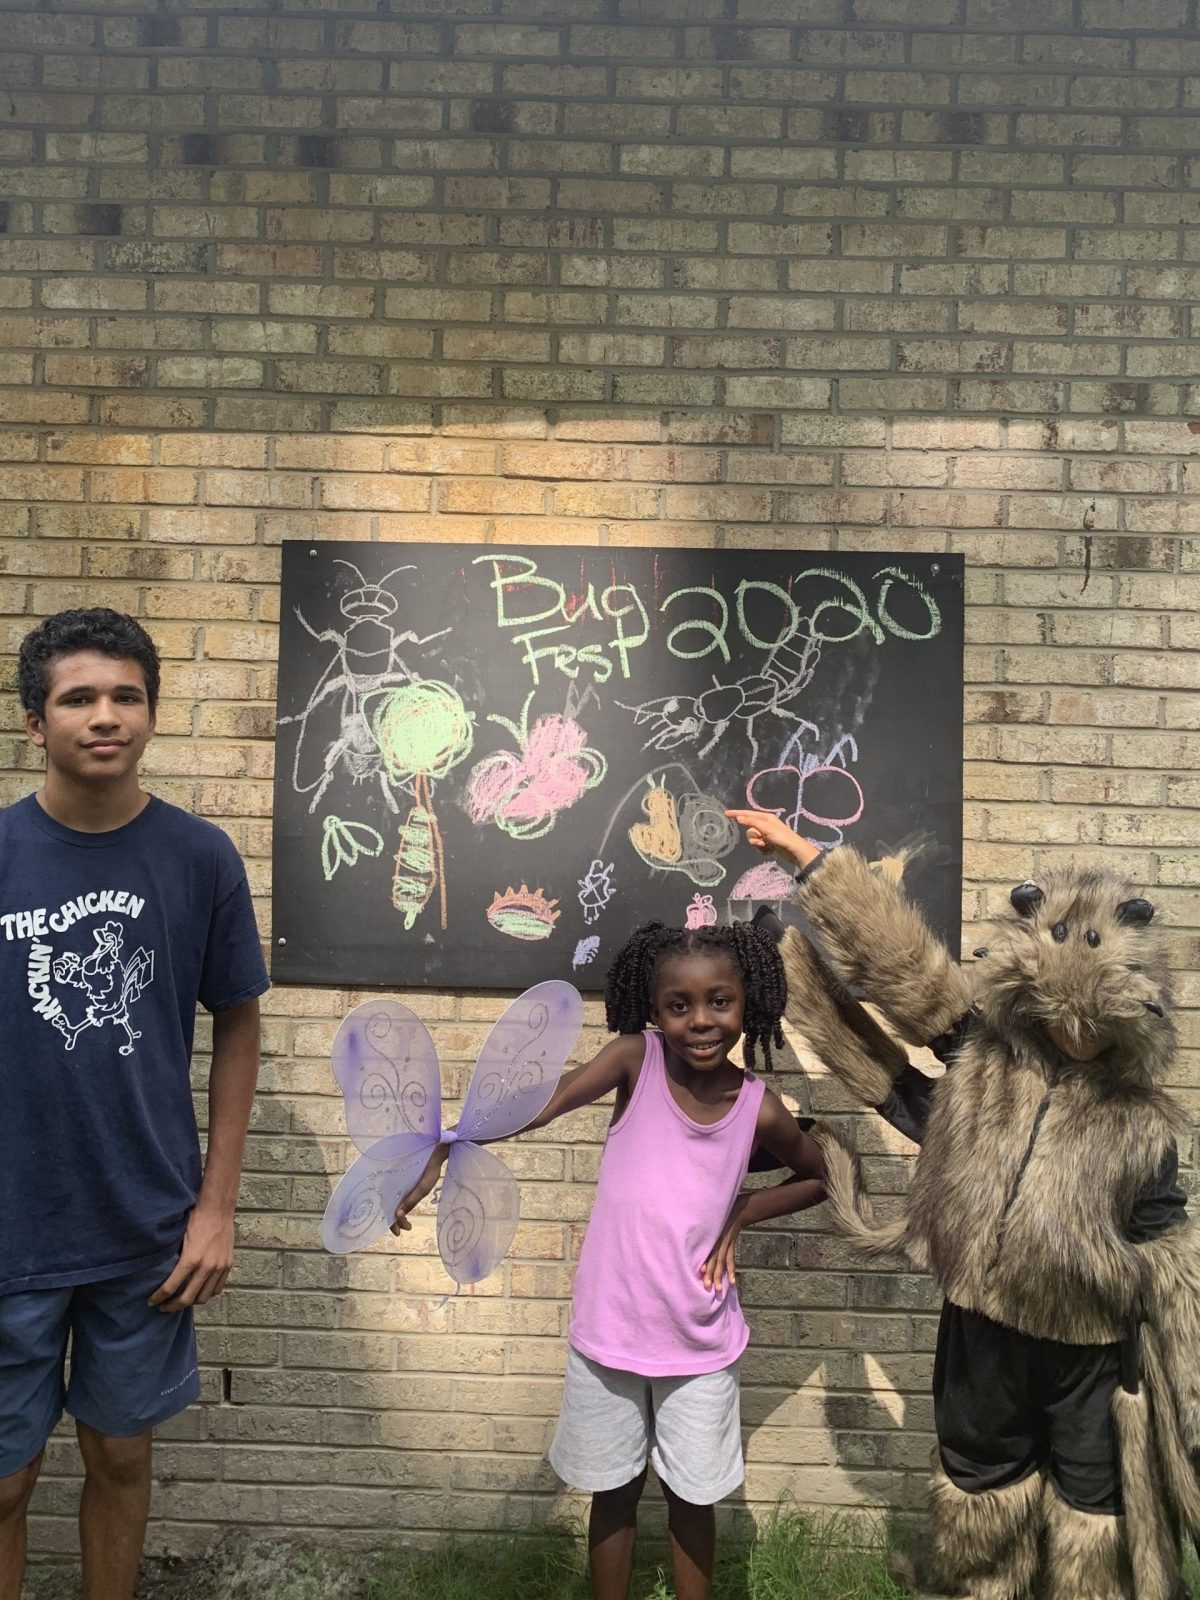 Three kids and a bugfest chalkboard-one is a hairy spider costume